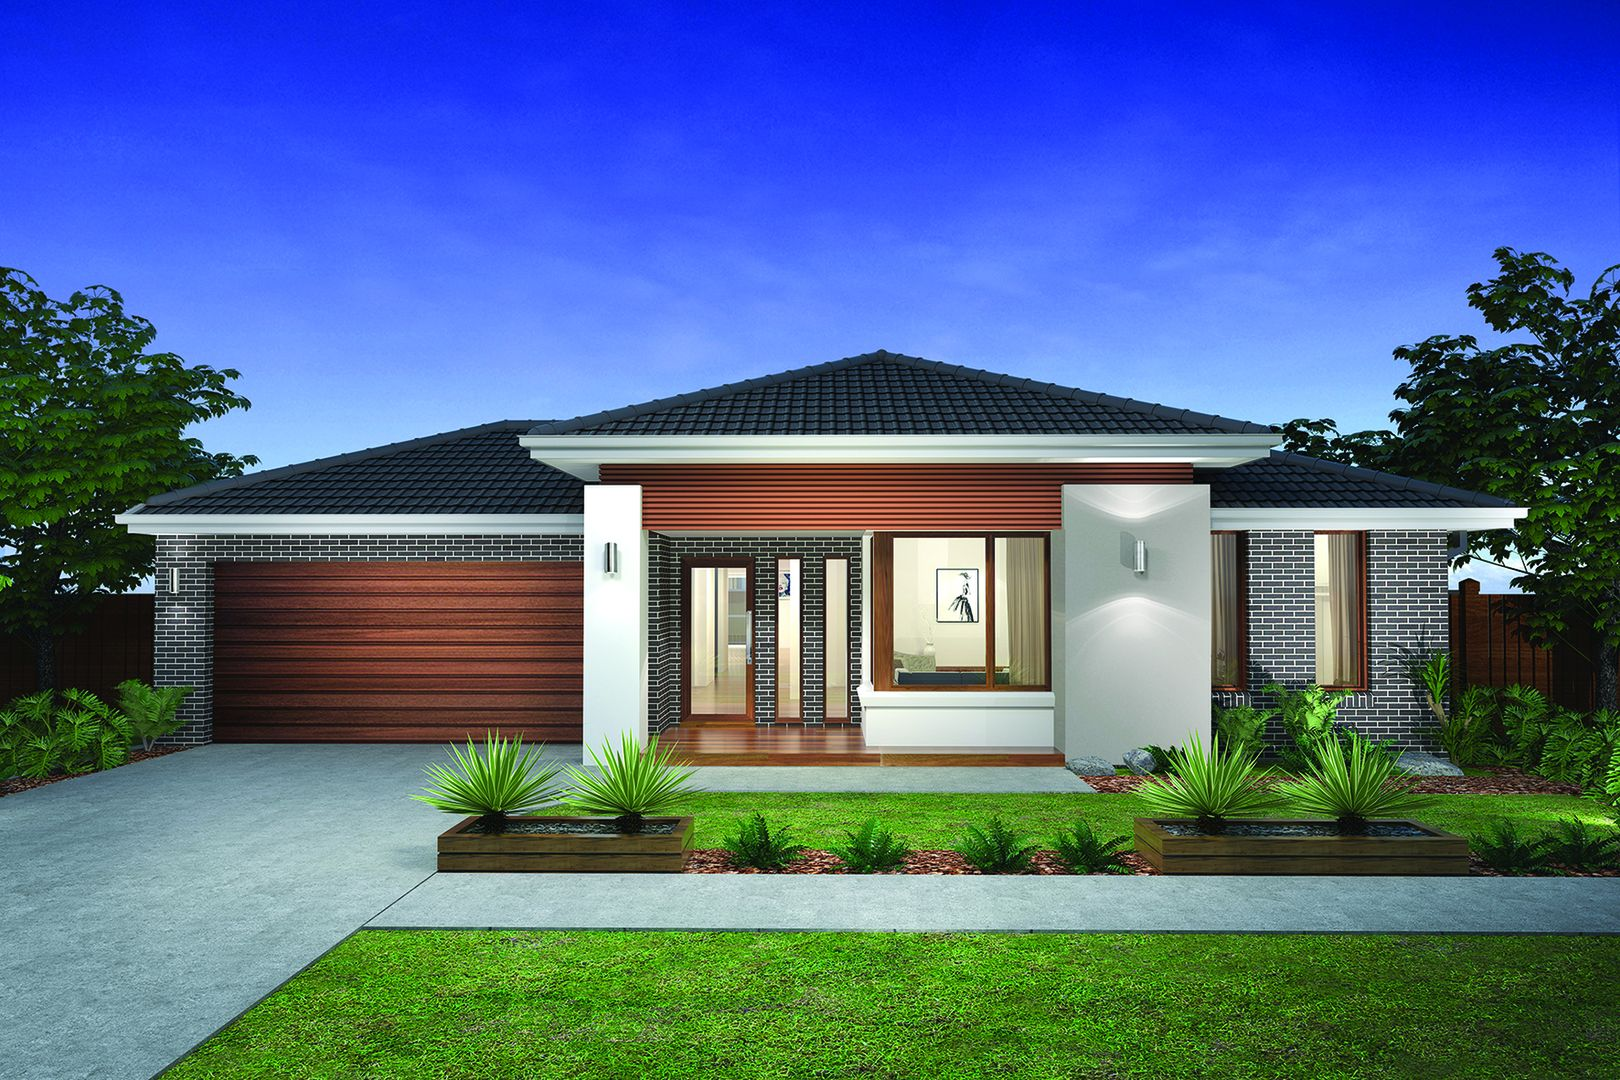 Lot 324 Sedge Street, Wyndham Vale VIC 3024, Image 0